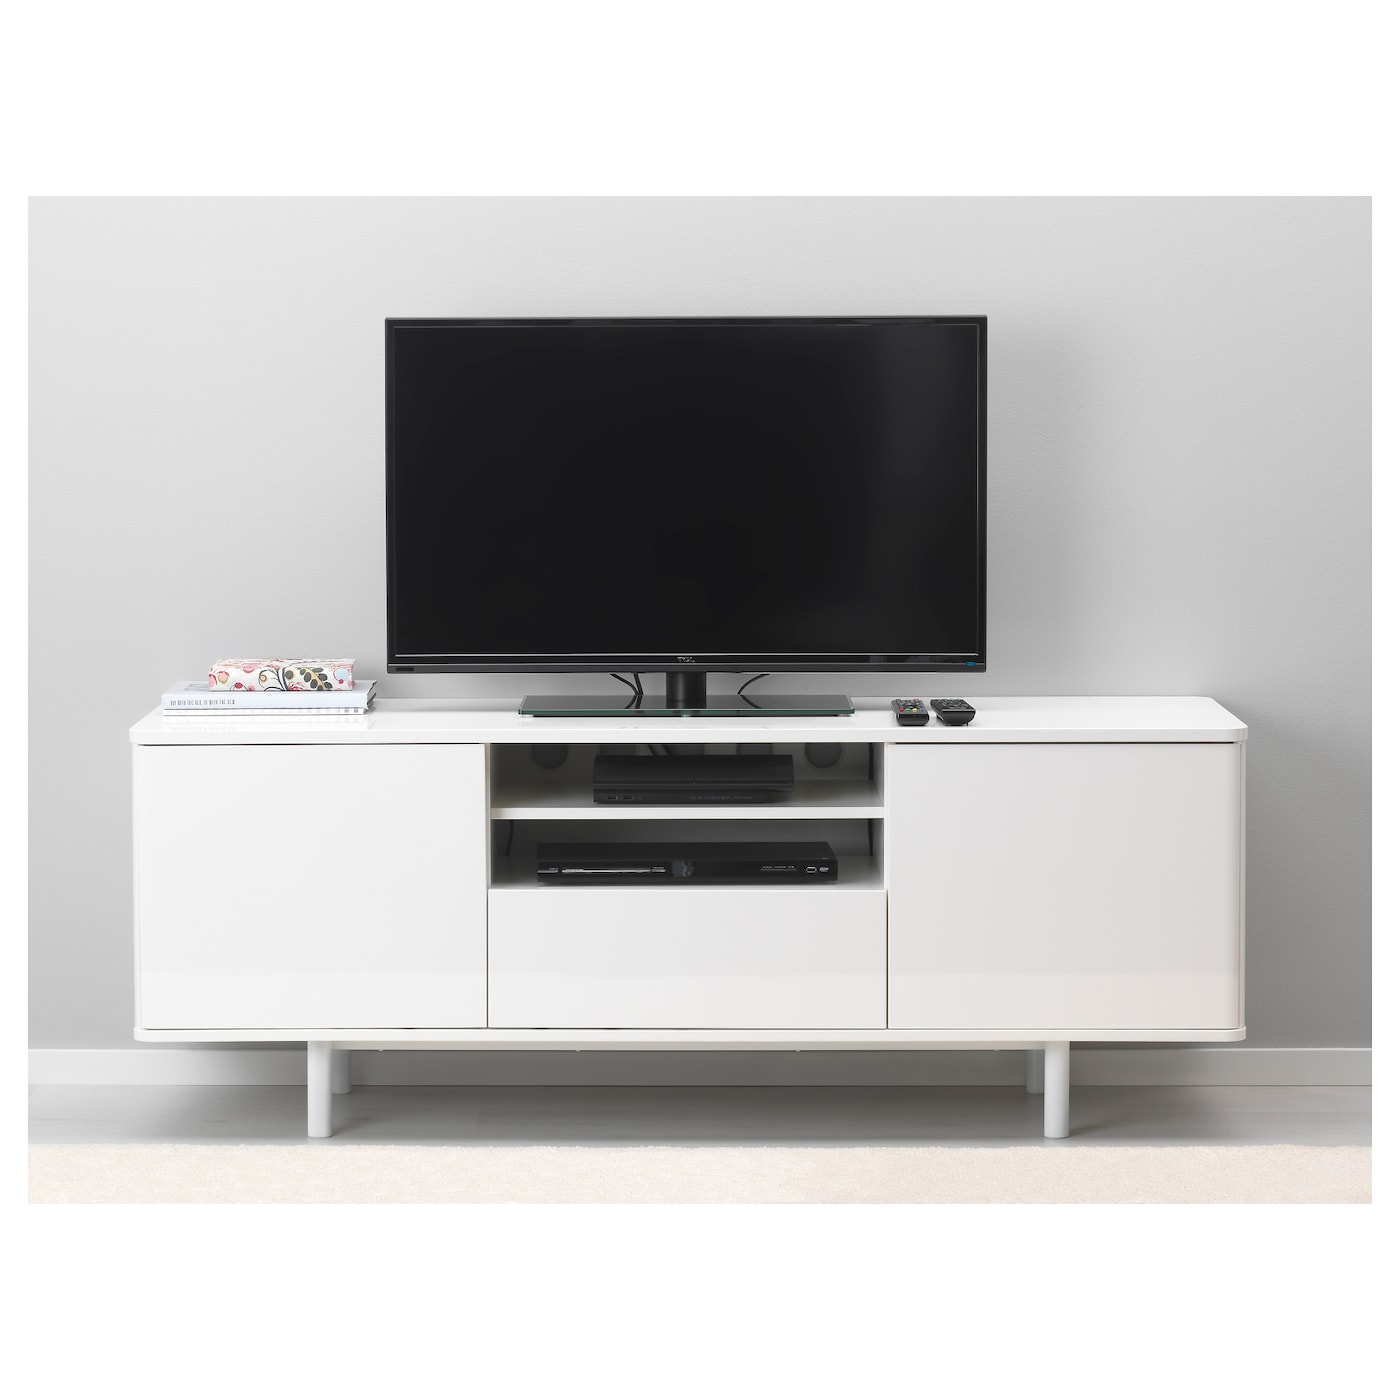 Mostorp Banc Tv Brillant Blanc 159×46 Cm Ikea # Meuble Tv Pivotant Ikea